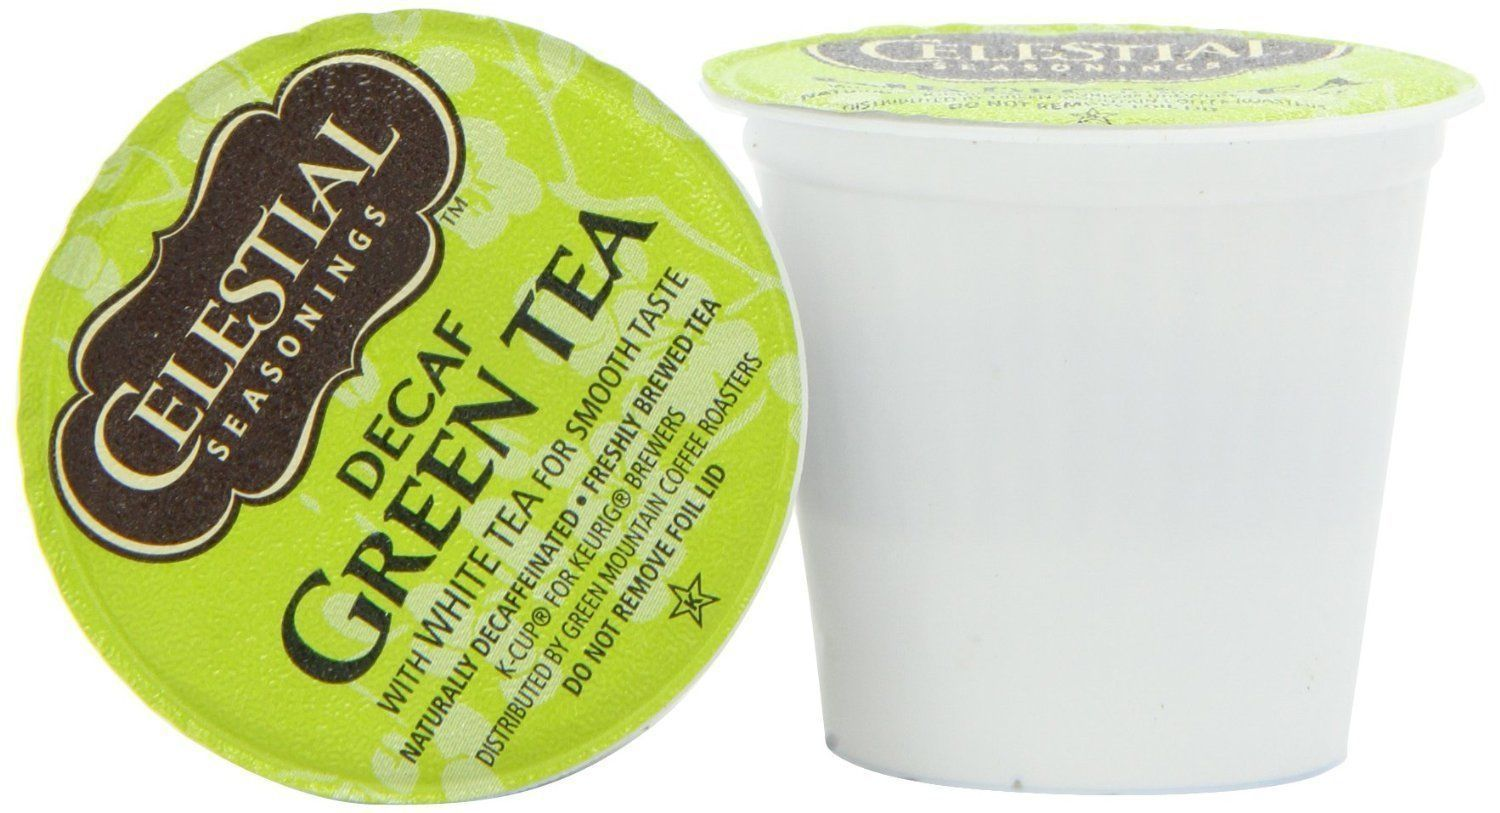 Primary image for Celestial Seasonings Decaf Green Tea 24 to 96 Keurig K cups Pick Your Own Size